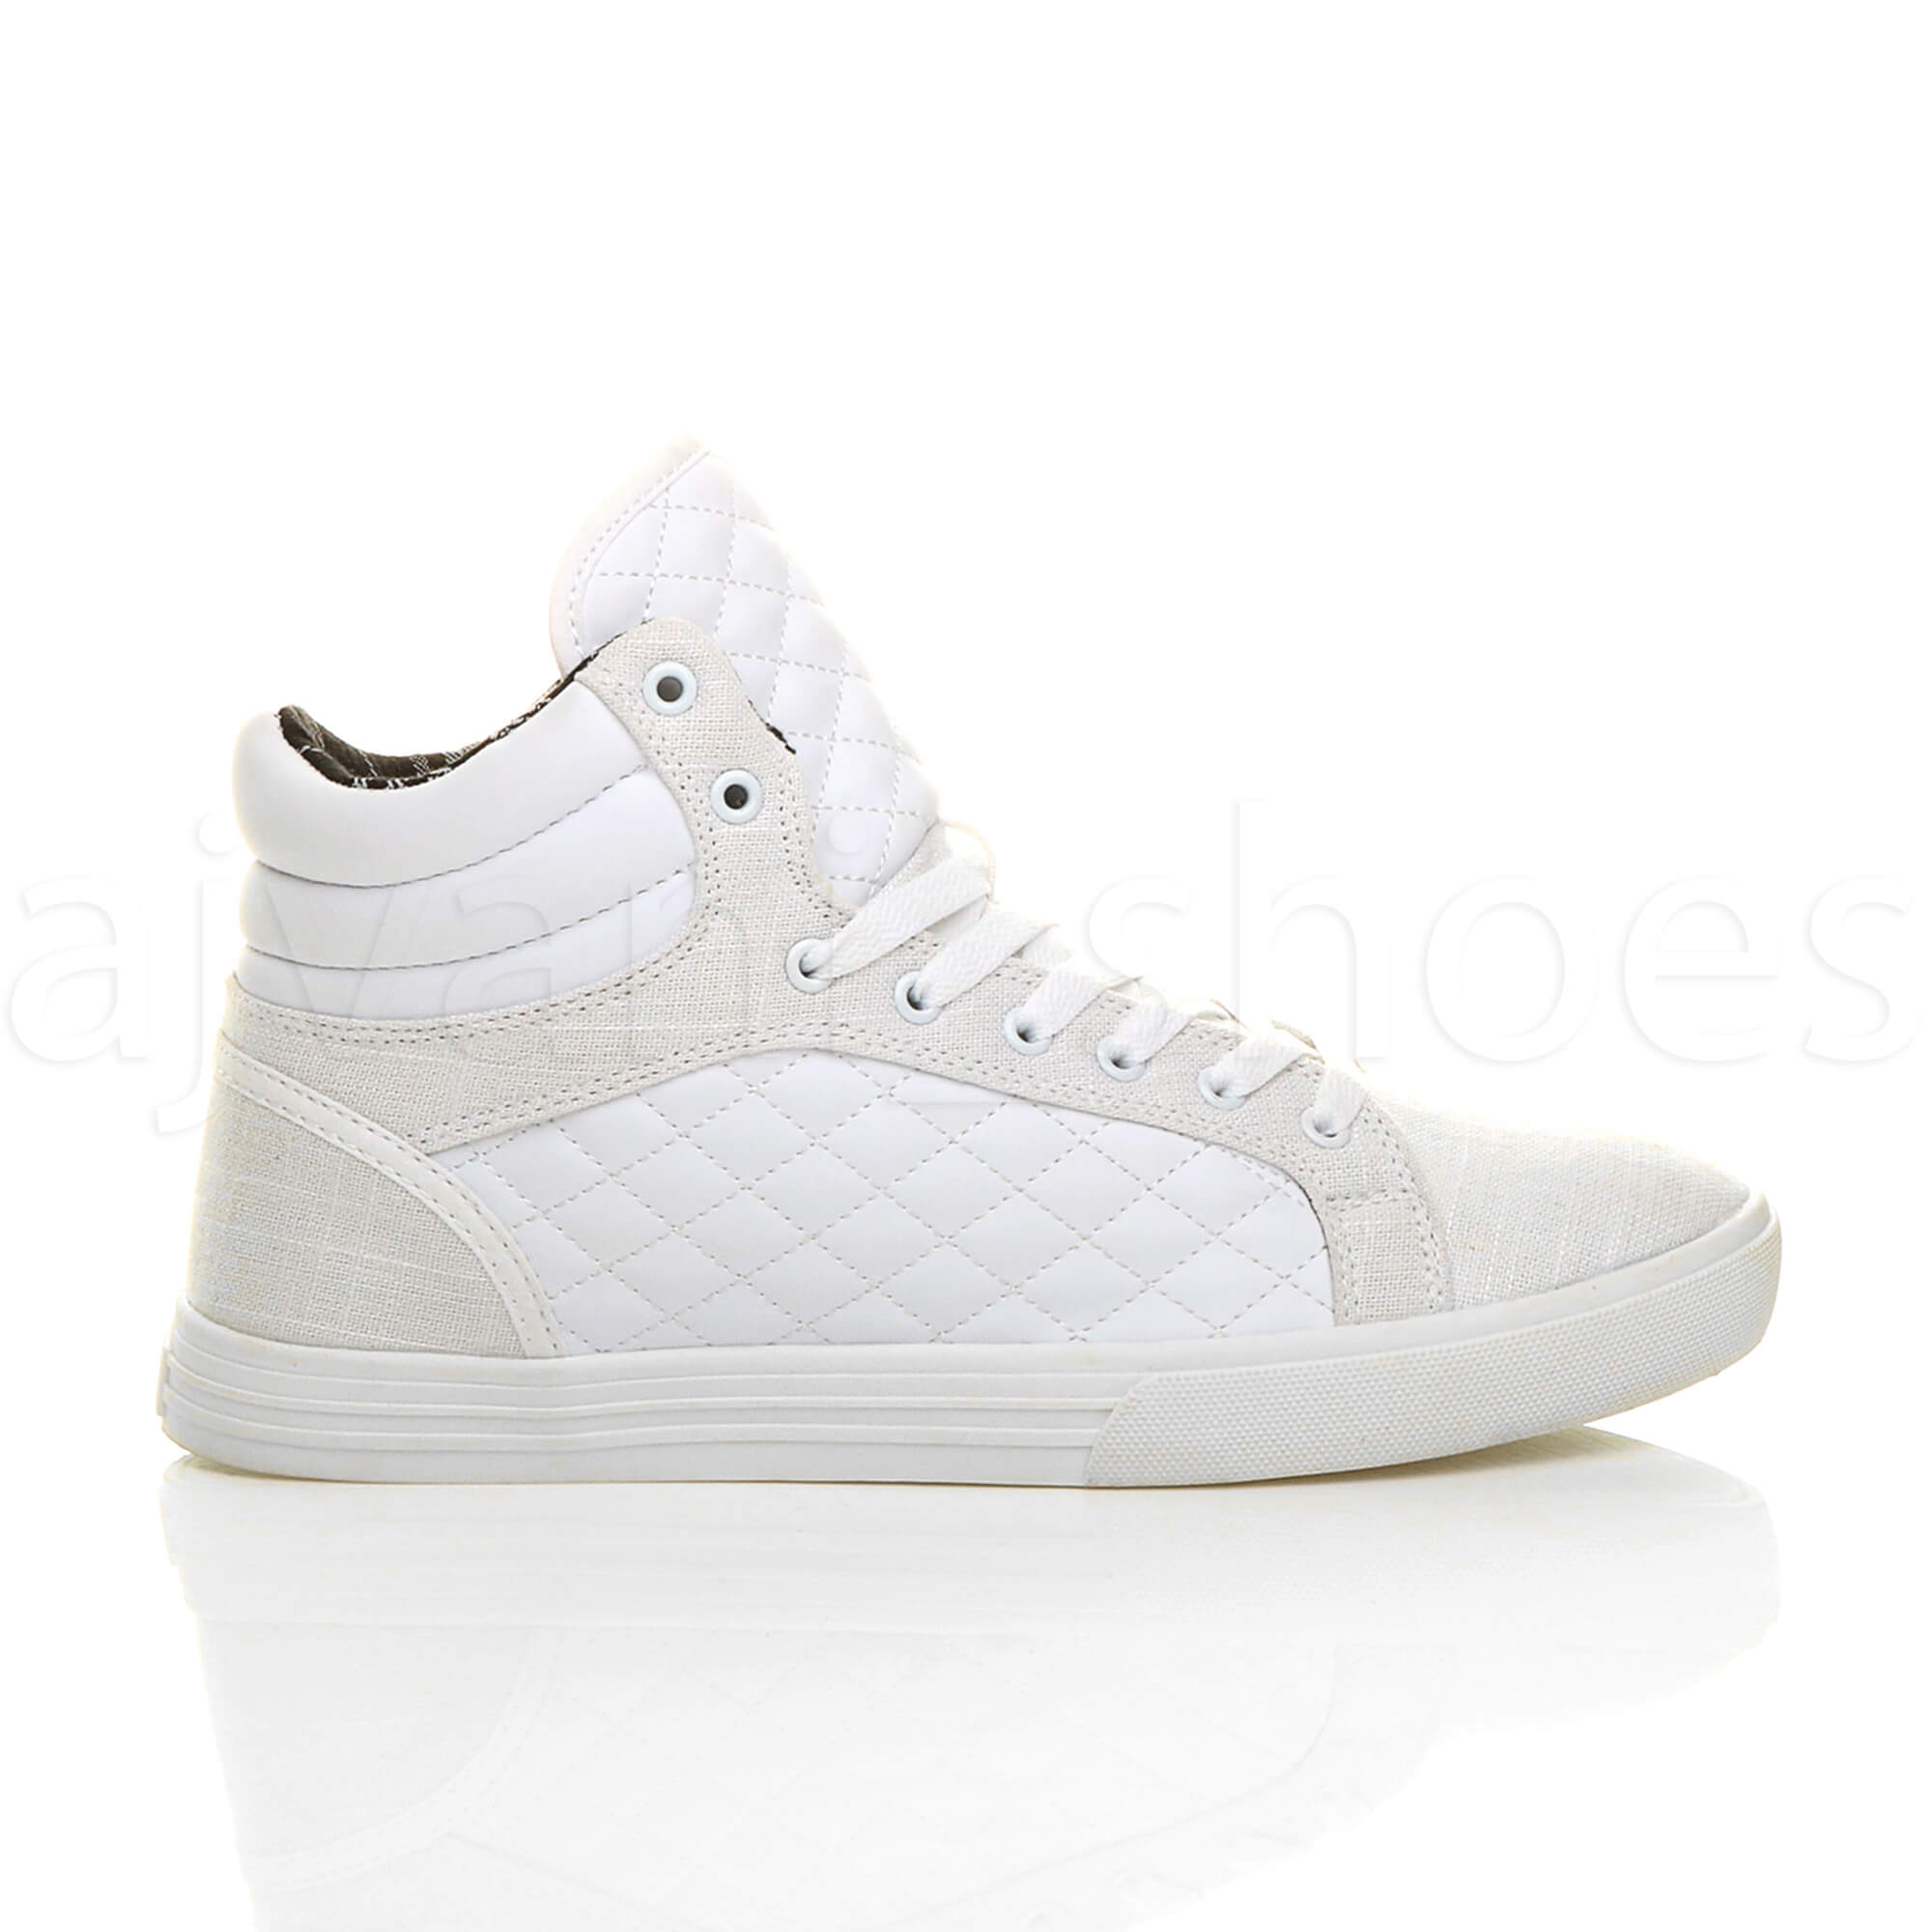 MENS-QUILTED-LACE-UP-FLAT-CASUAL-HI-HIGH-TOP-TRAINERS-SHOES-ANKLE-BOOTS-SIZE thumbnail 31